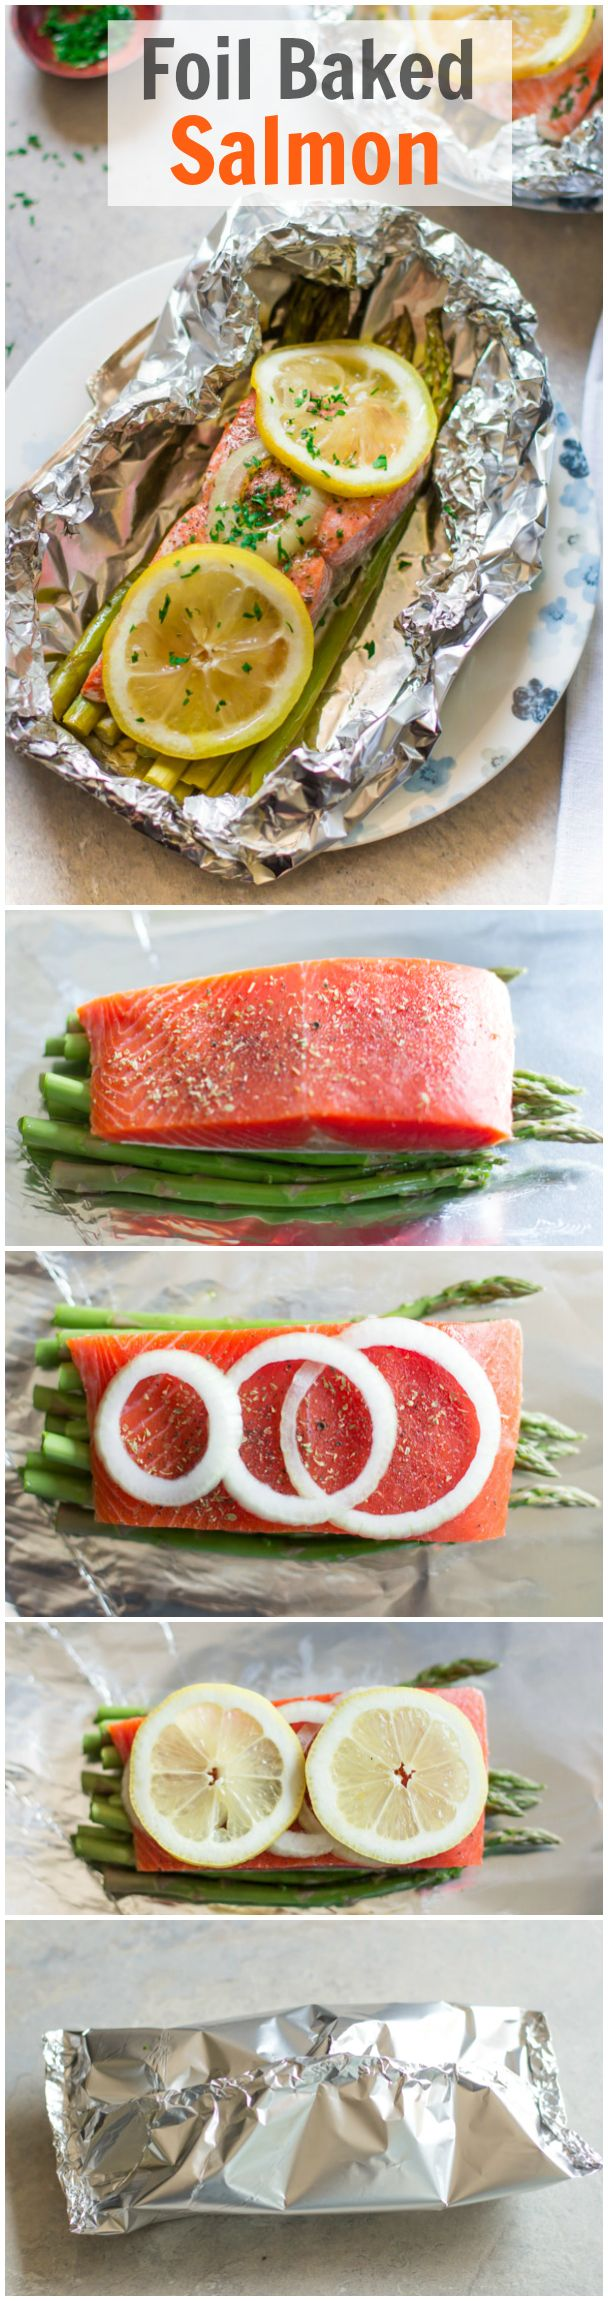 Foil Baked Salmon  You Infuse Your Salmon With Lemon, Onion, Dried Oregano  And